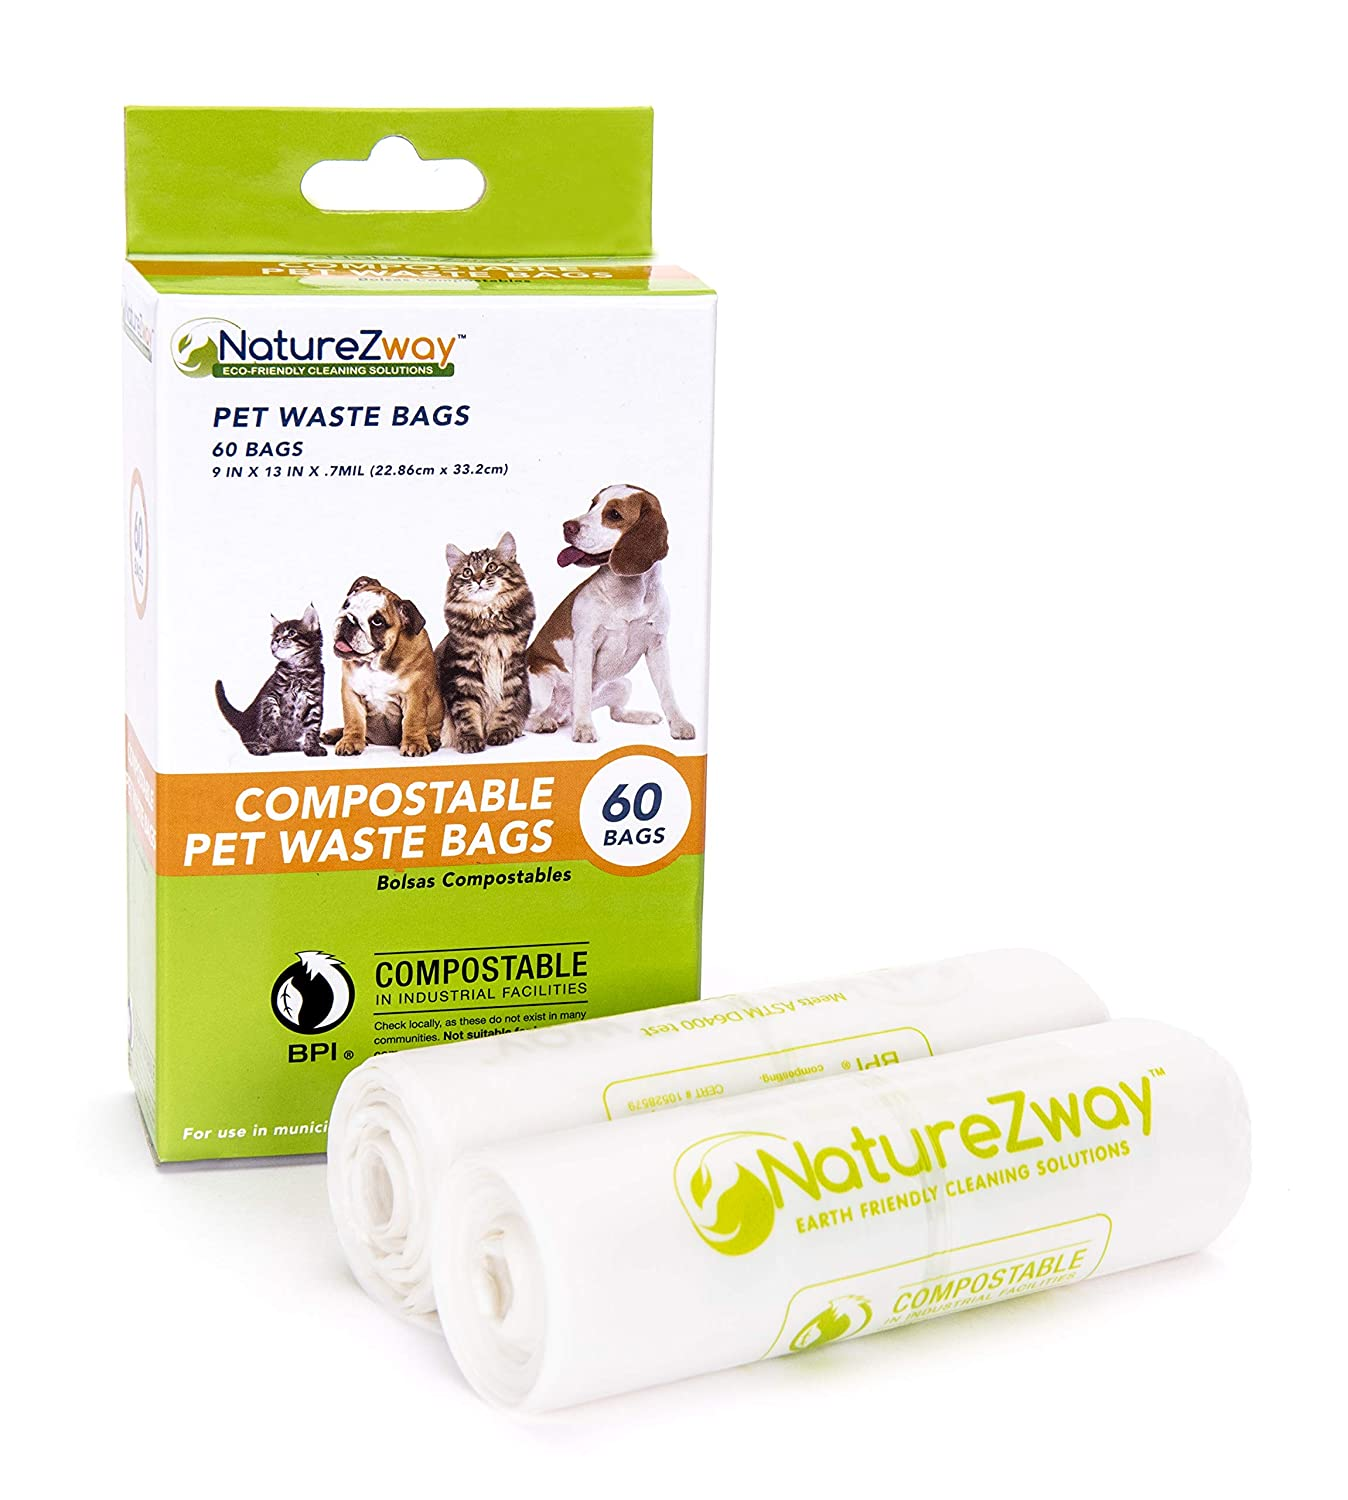 Amazon.com: NatureZway Bamboo Pet Waste Bags | Compostable ...